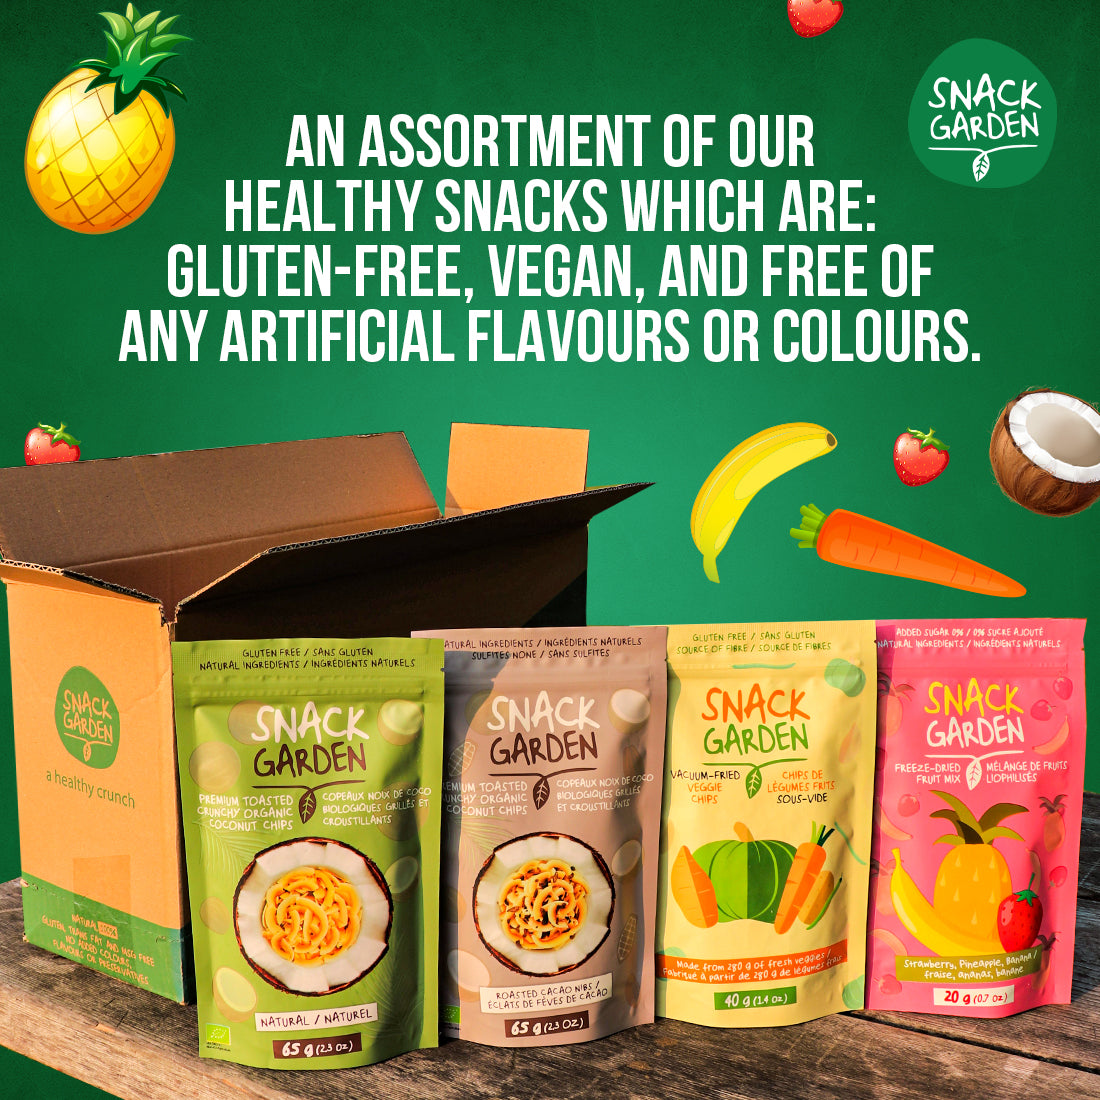 An assortment of our healthy snacks which are gluten-free, vegan, and all natural.